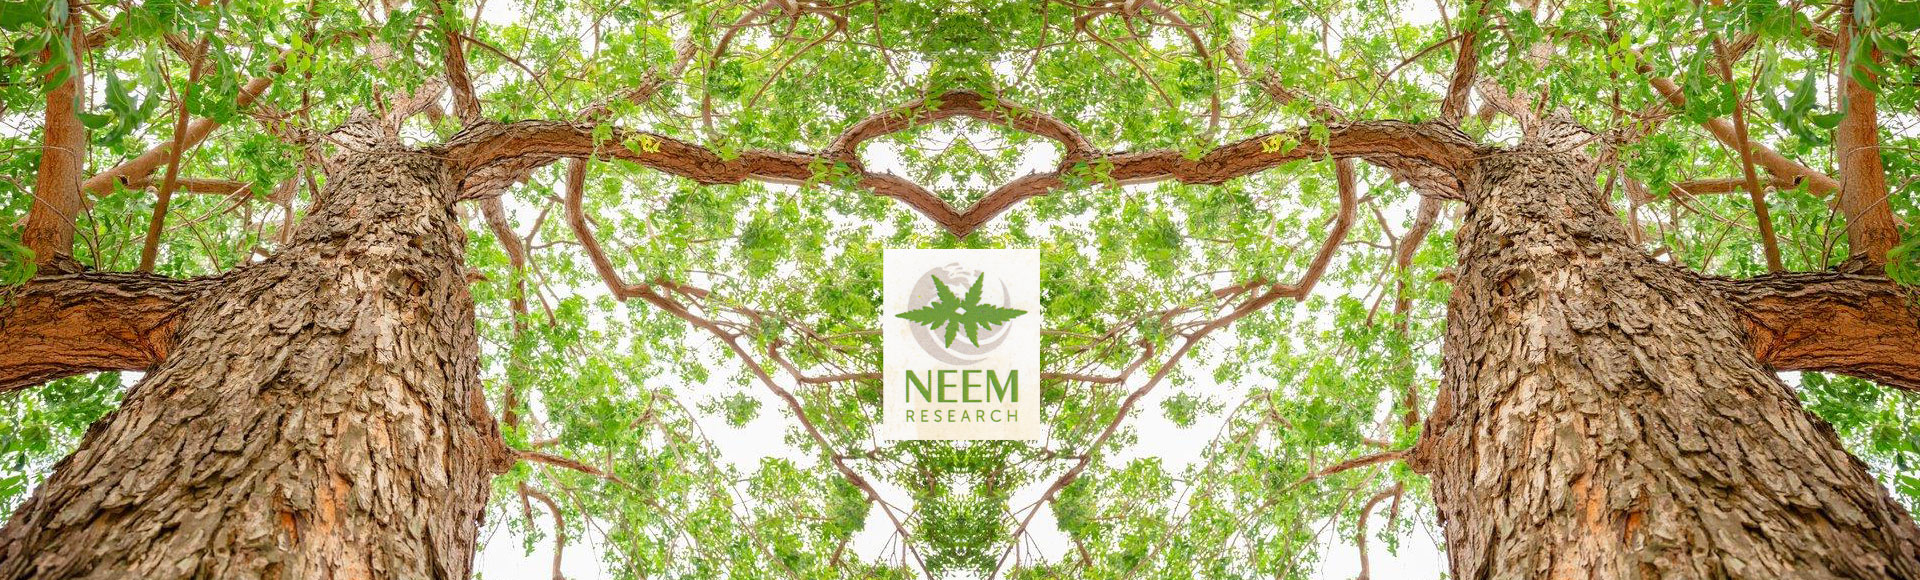 NEEM-NATURE'S HEALING GIFT TO HUMANITY